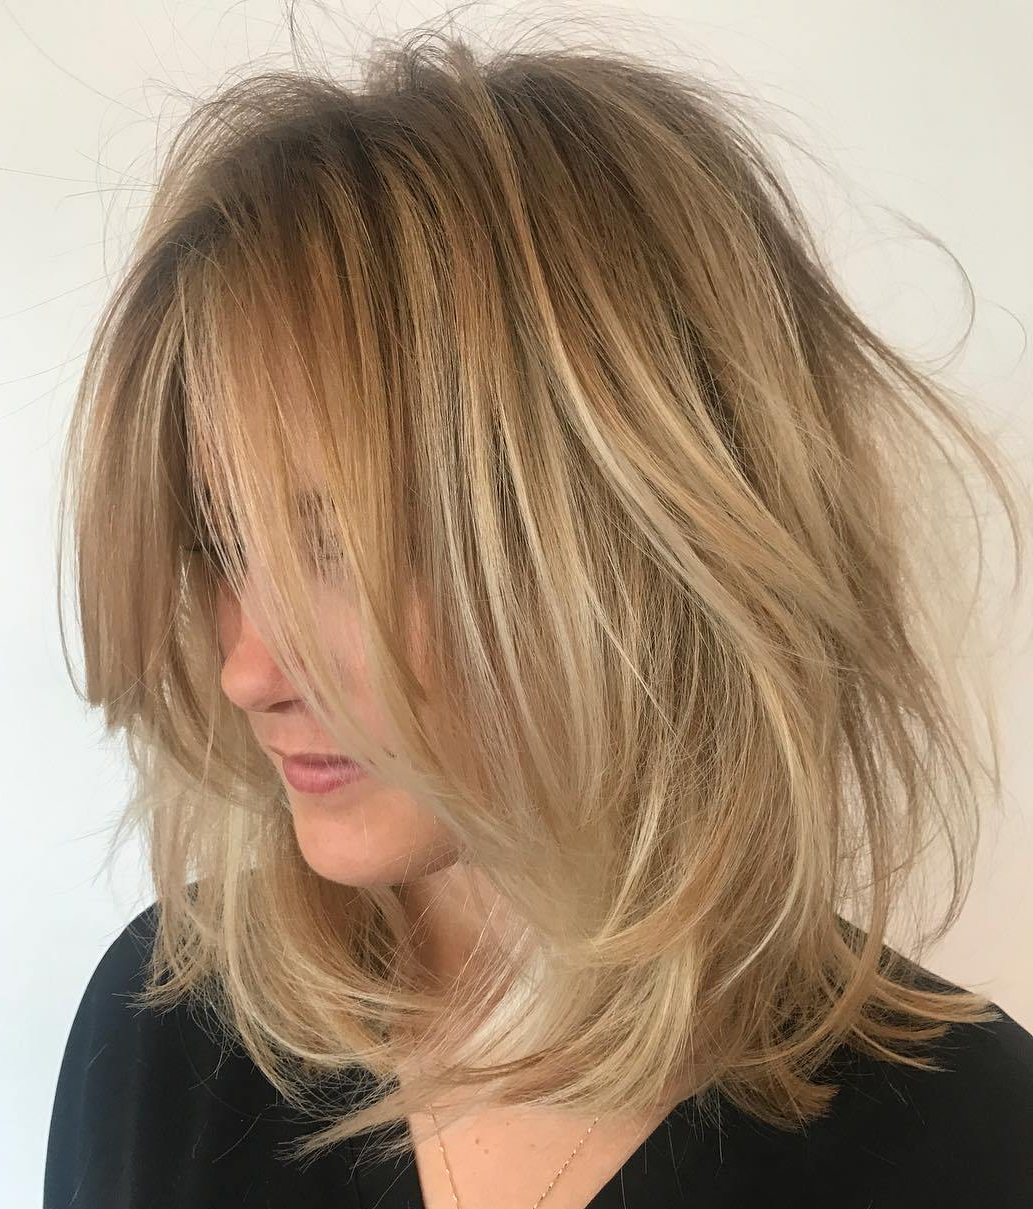 70 Devastatingly Cool Haircuts For Thin Hair Regarding Tousled Wavy Blonde Bob Hairstyles (View 6 of 25)